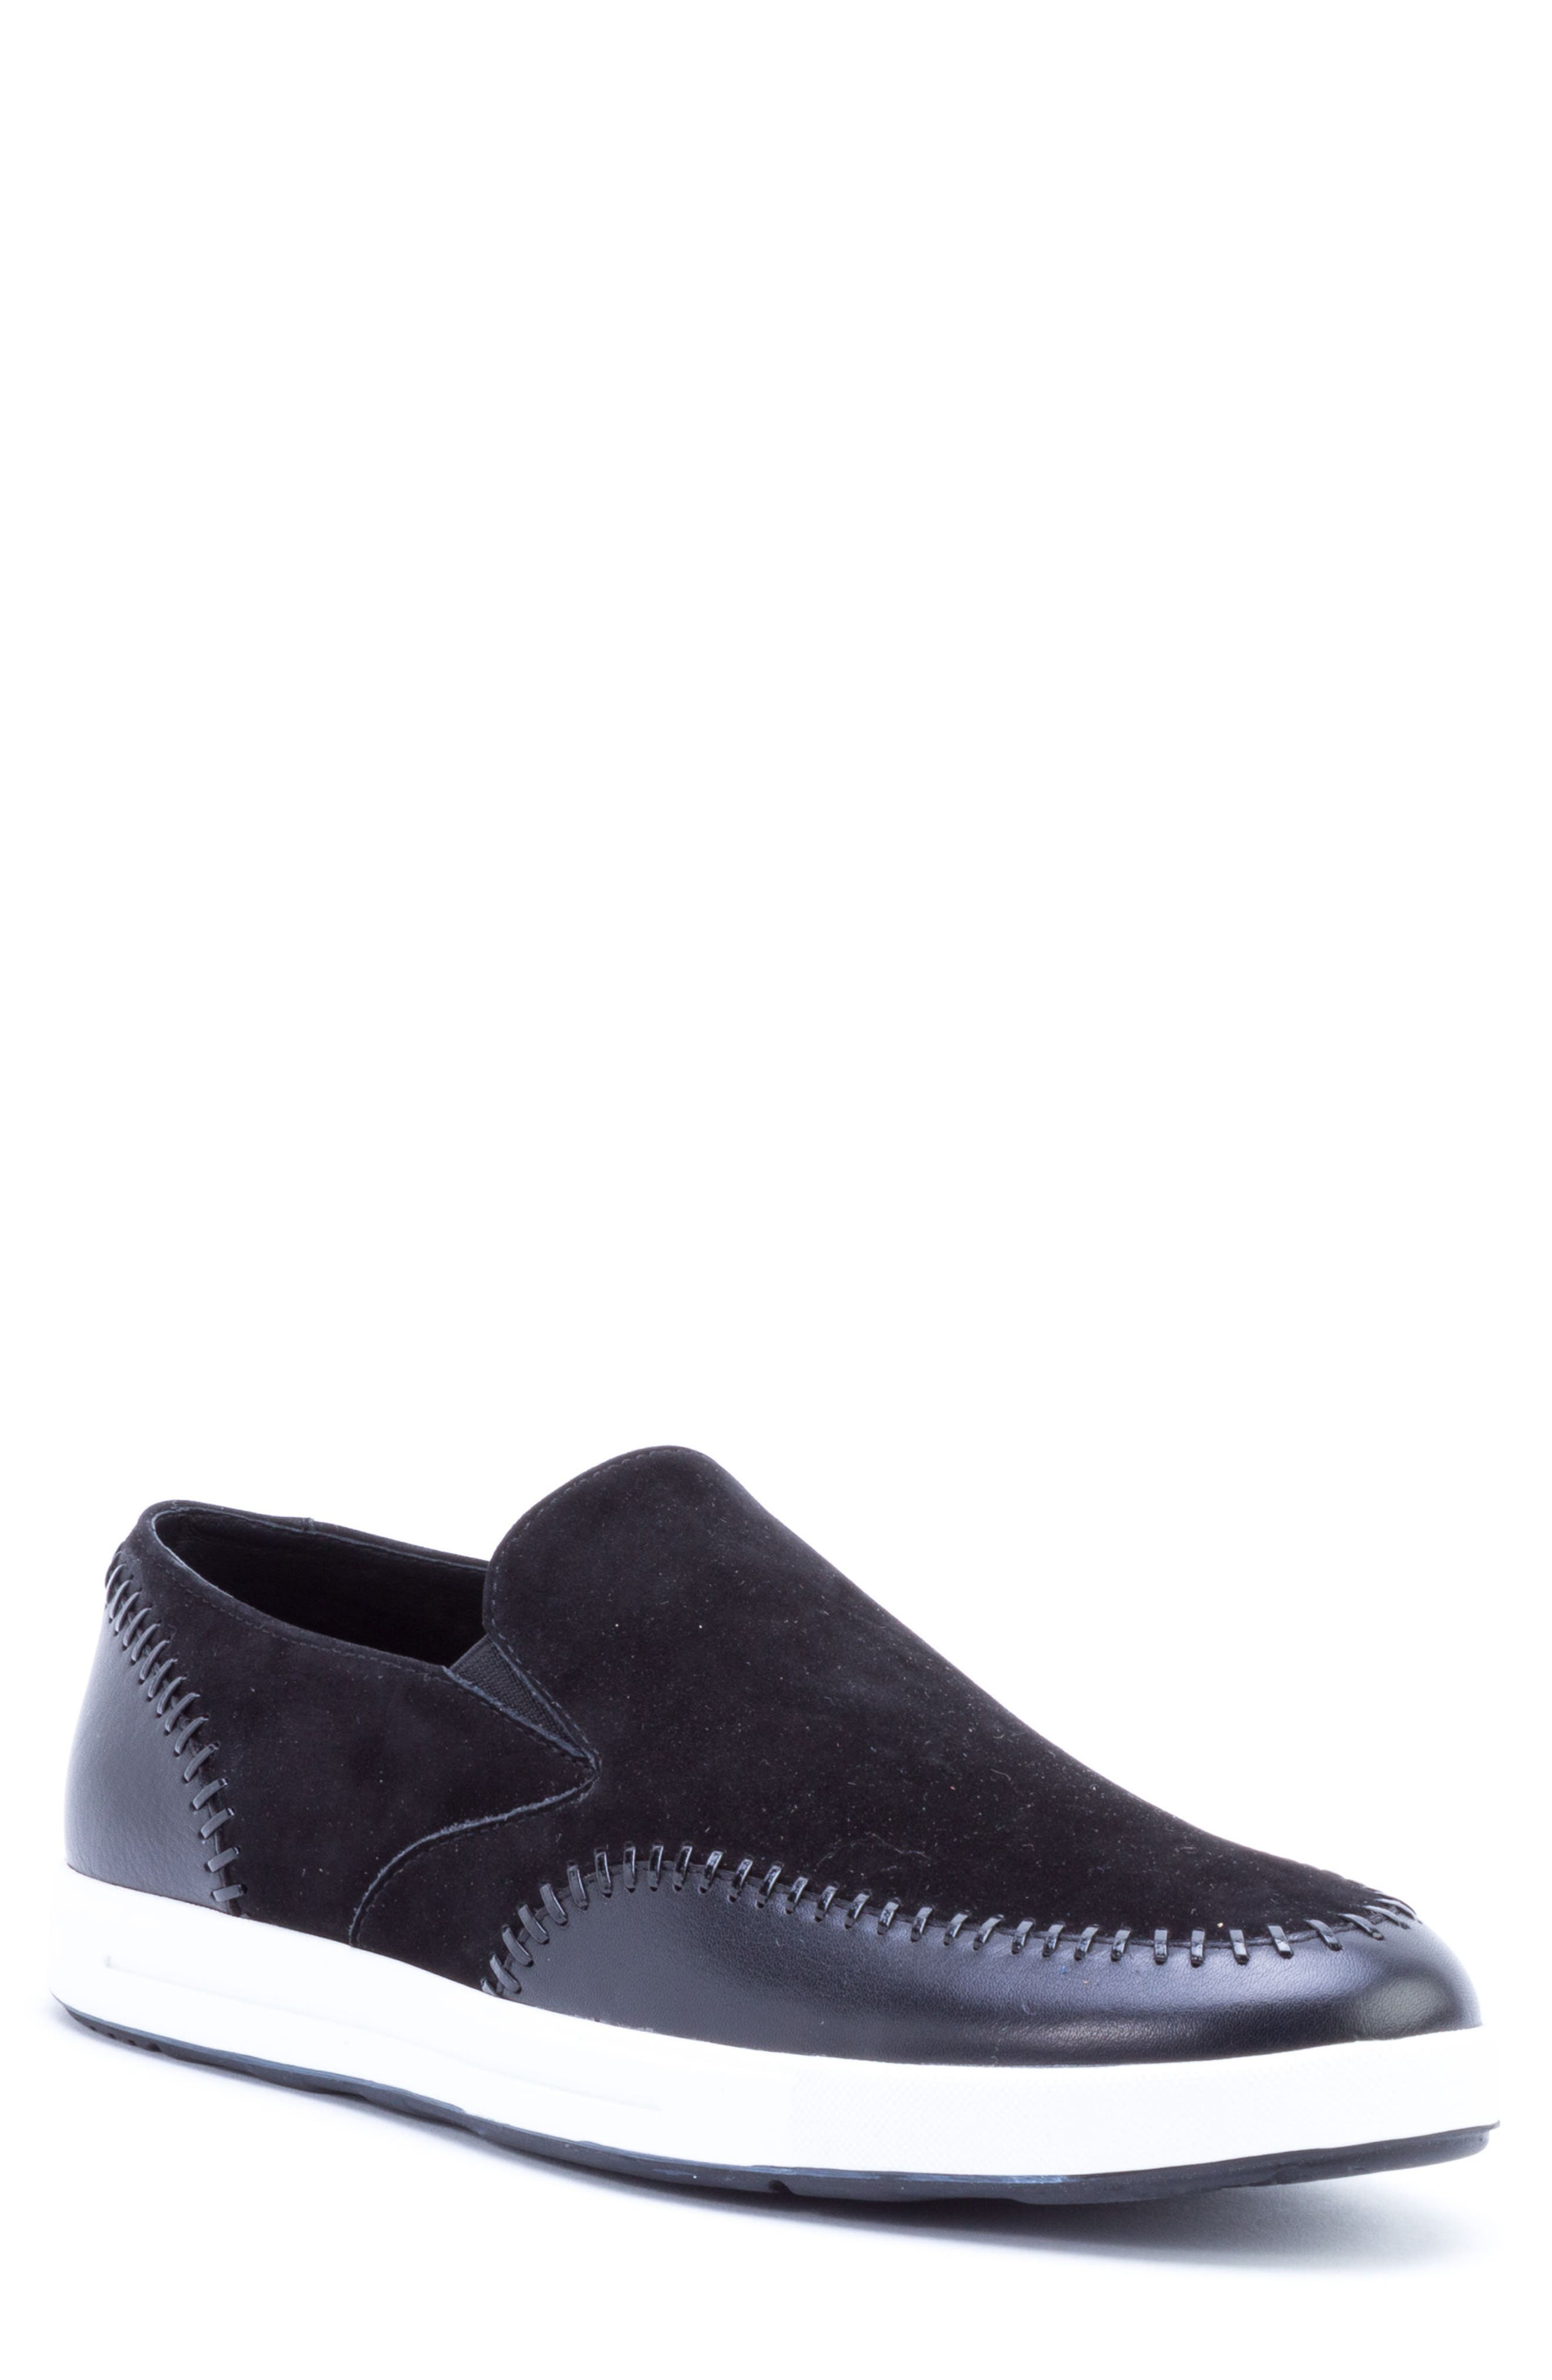 Caravaggio Whipstitched Slip-On Sneaker,                         Main,                         color, BLACK SUEDE/ LEATHER